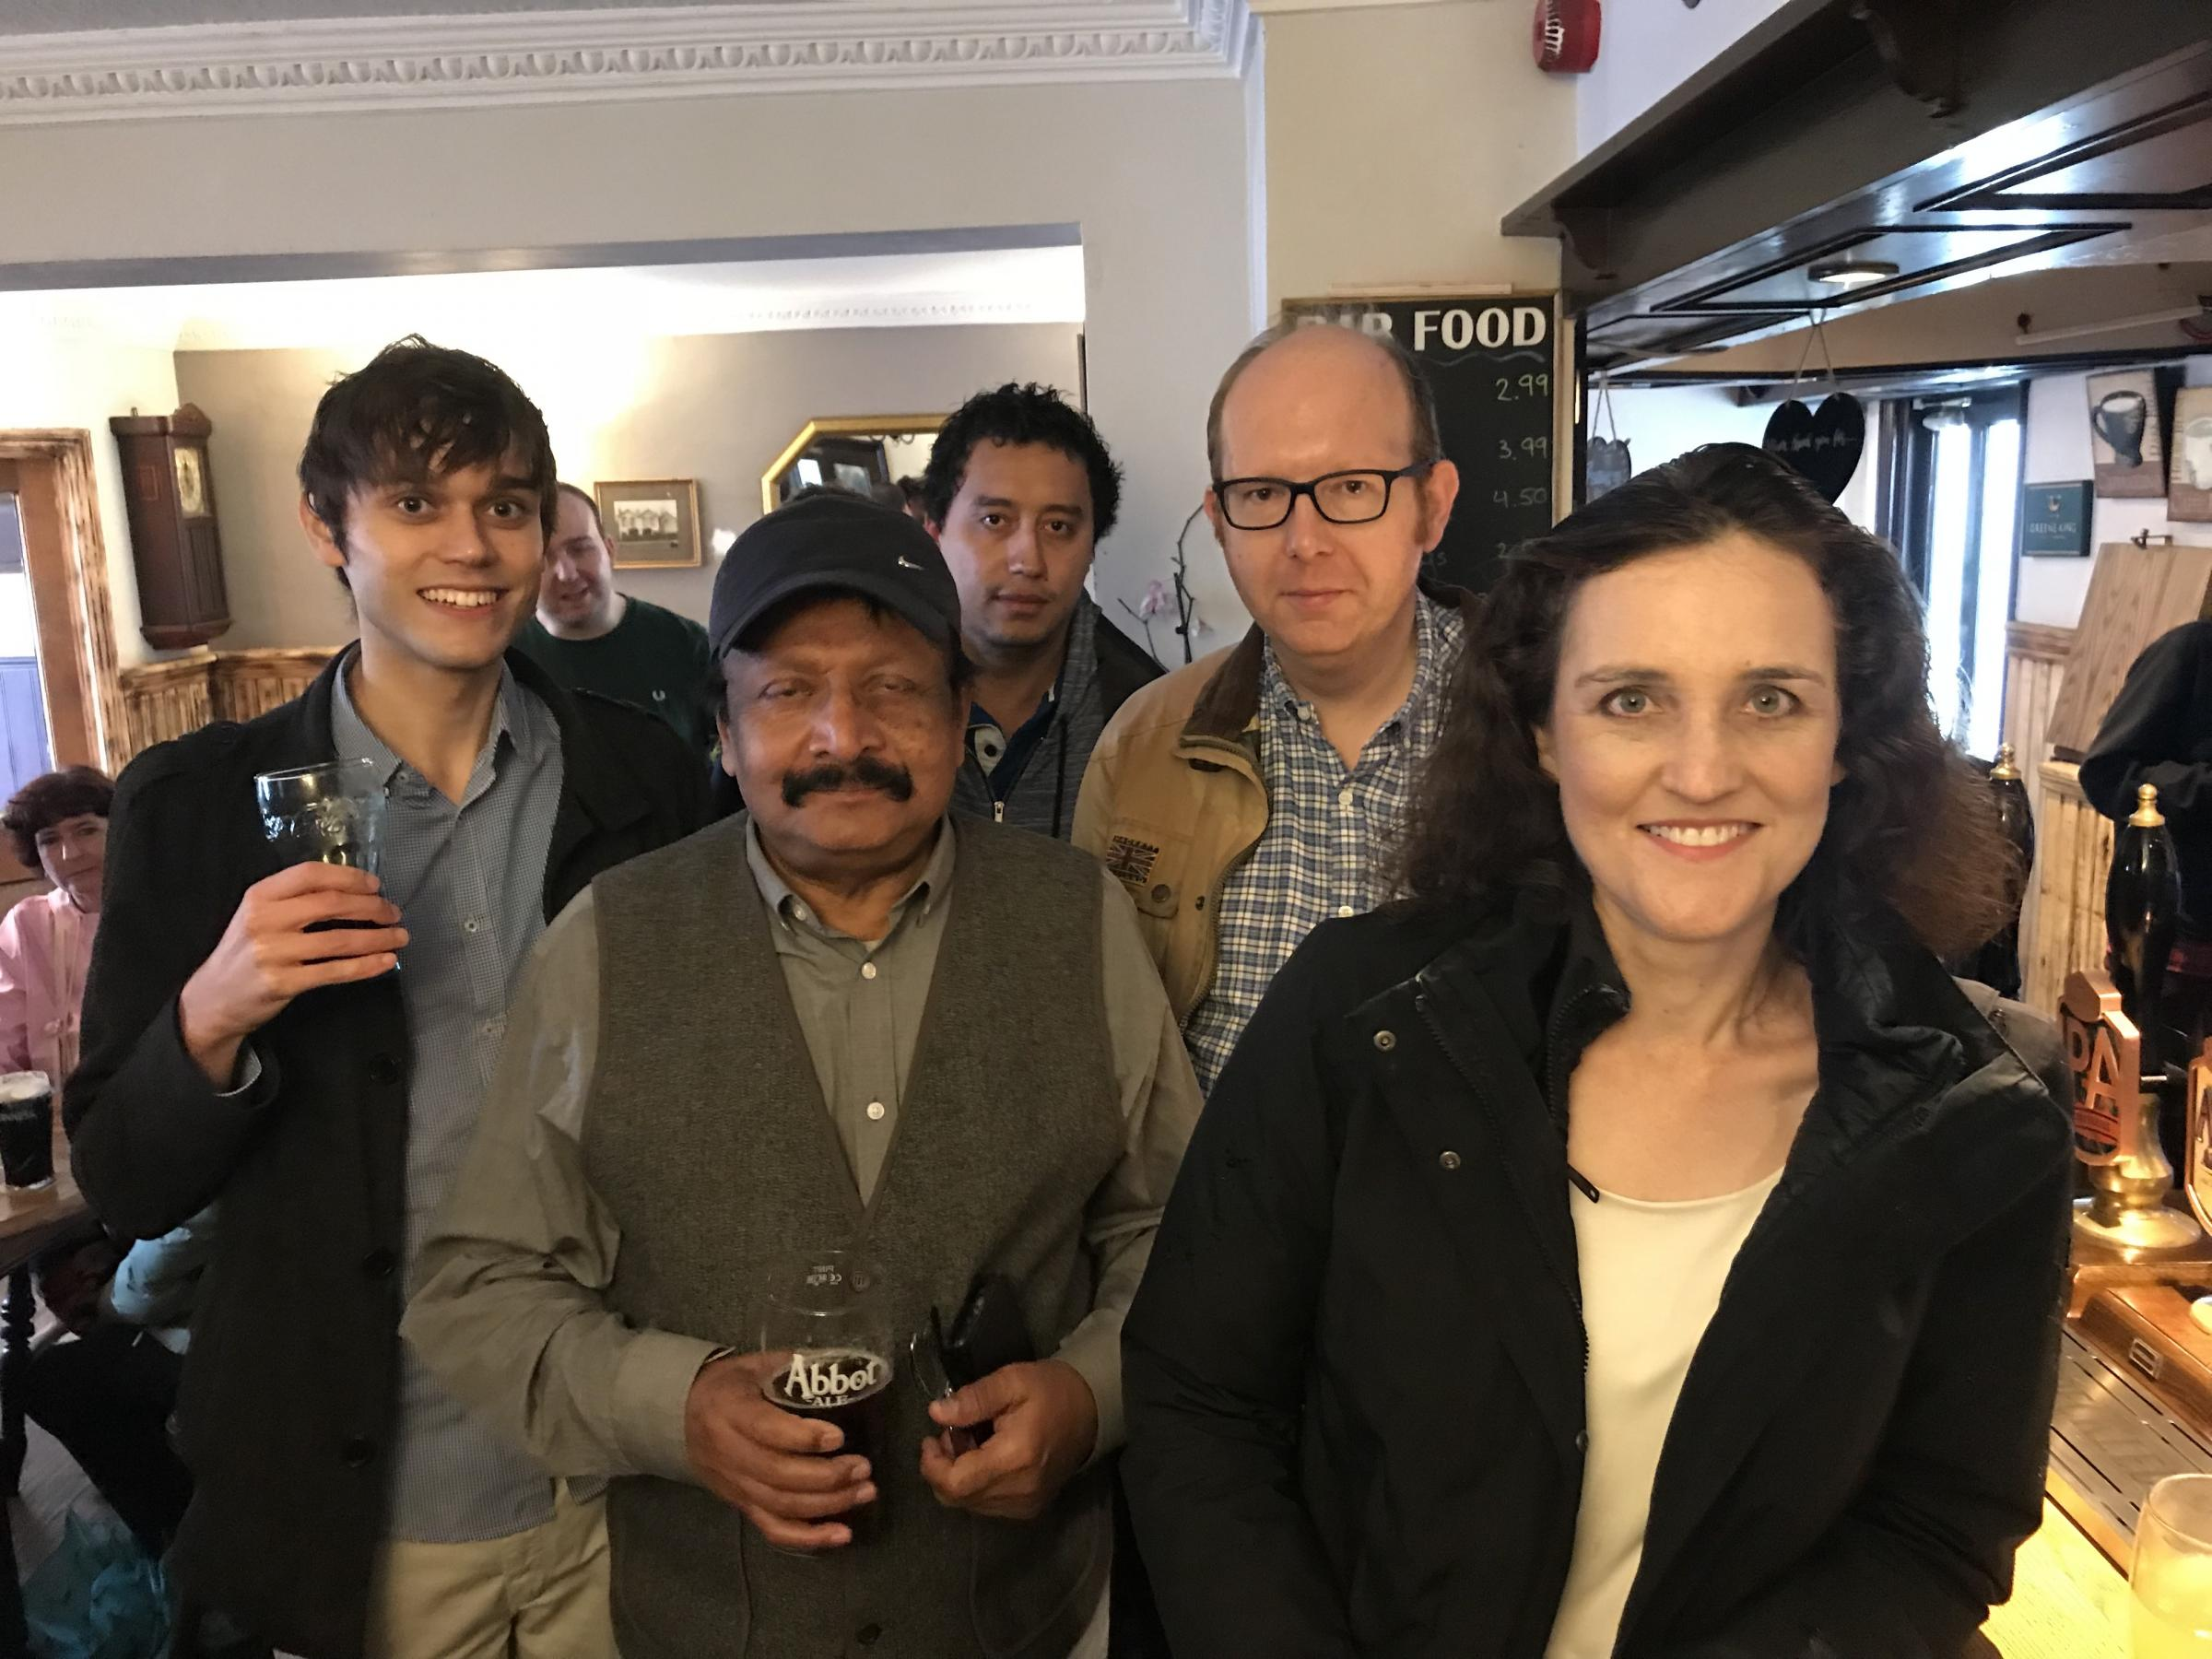 Ms Villiers at the Builders Arms with Cllr Julian Teare, Cllr Felix Byers and other pub customers